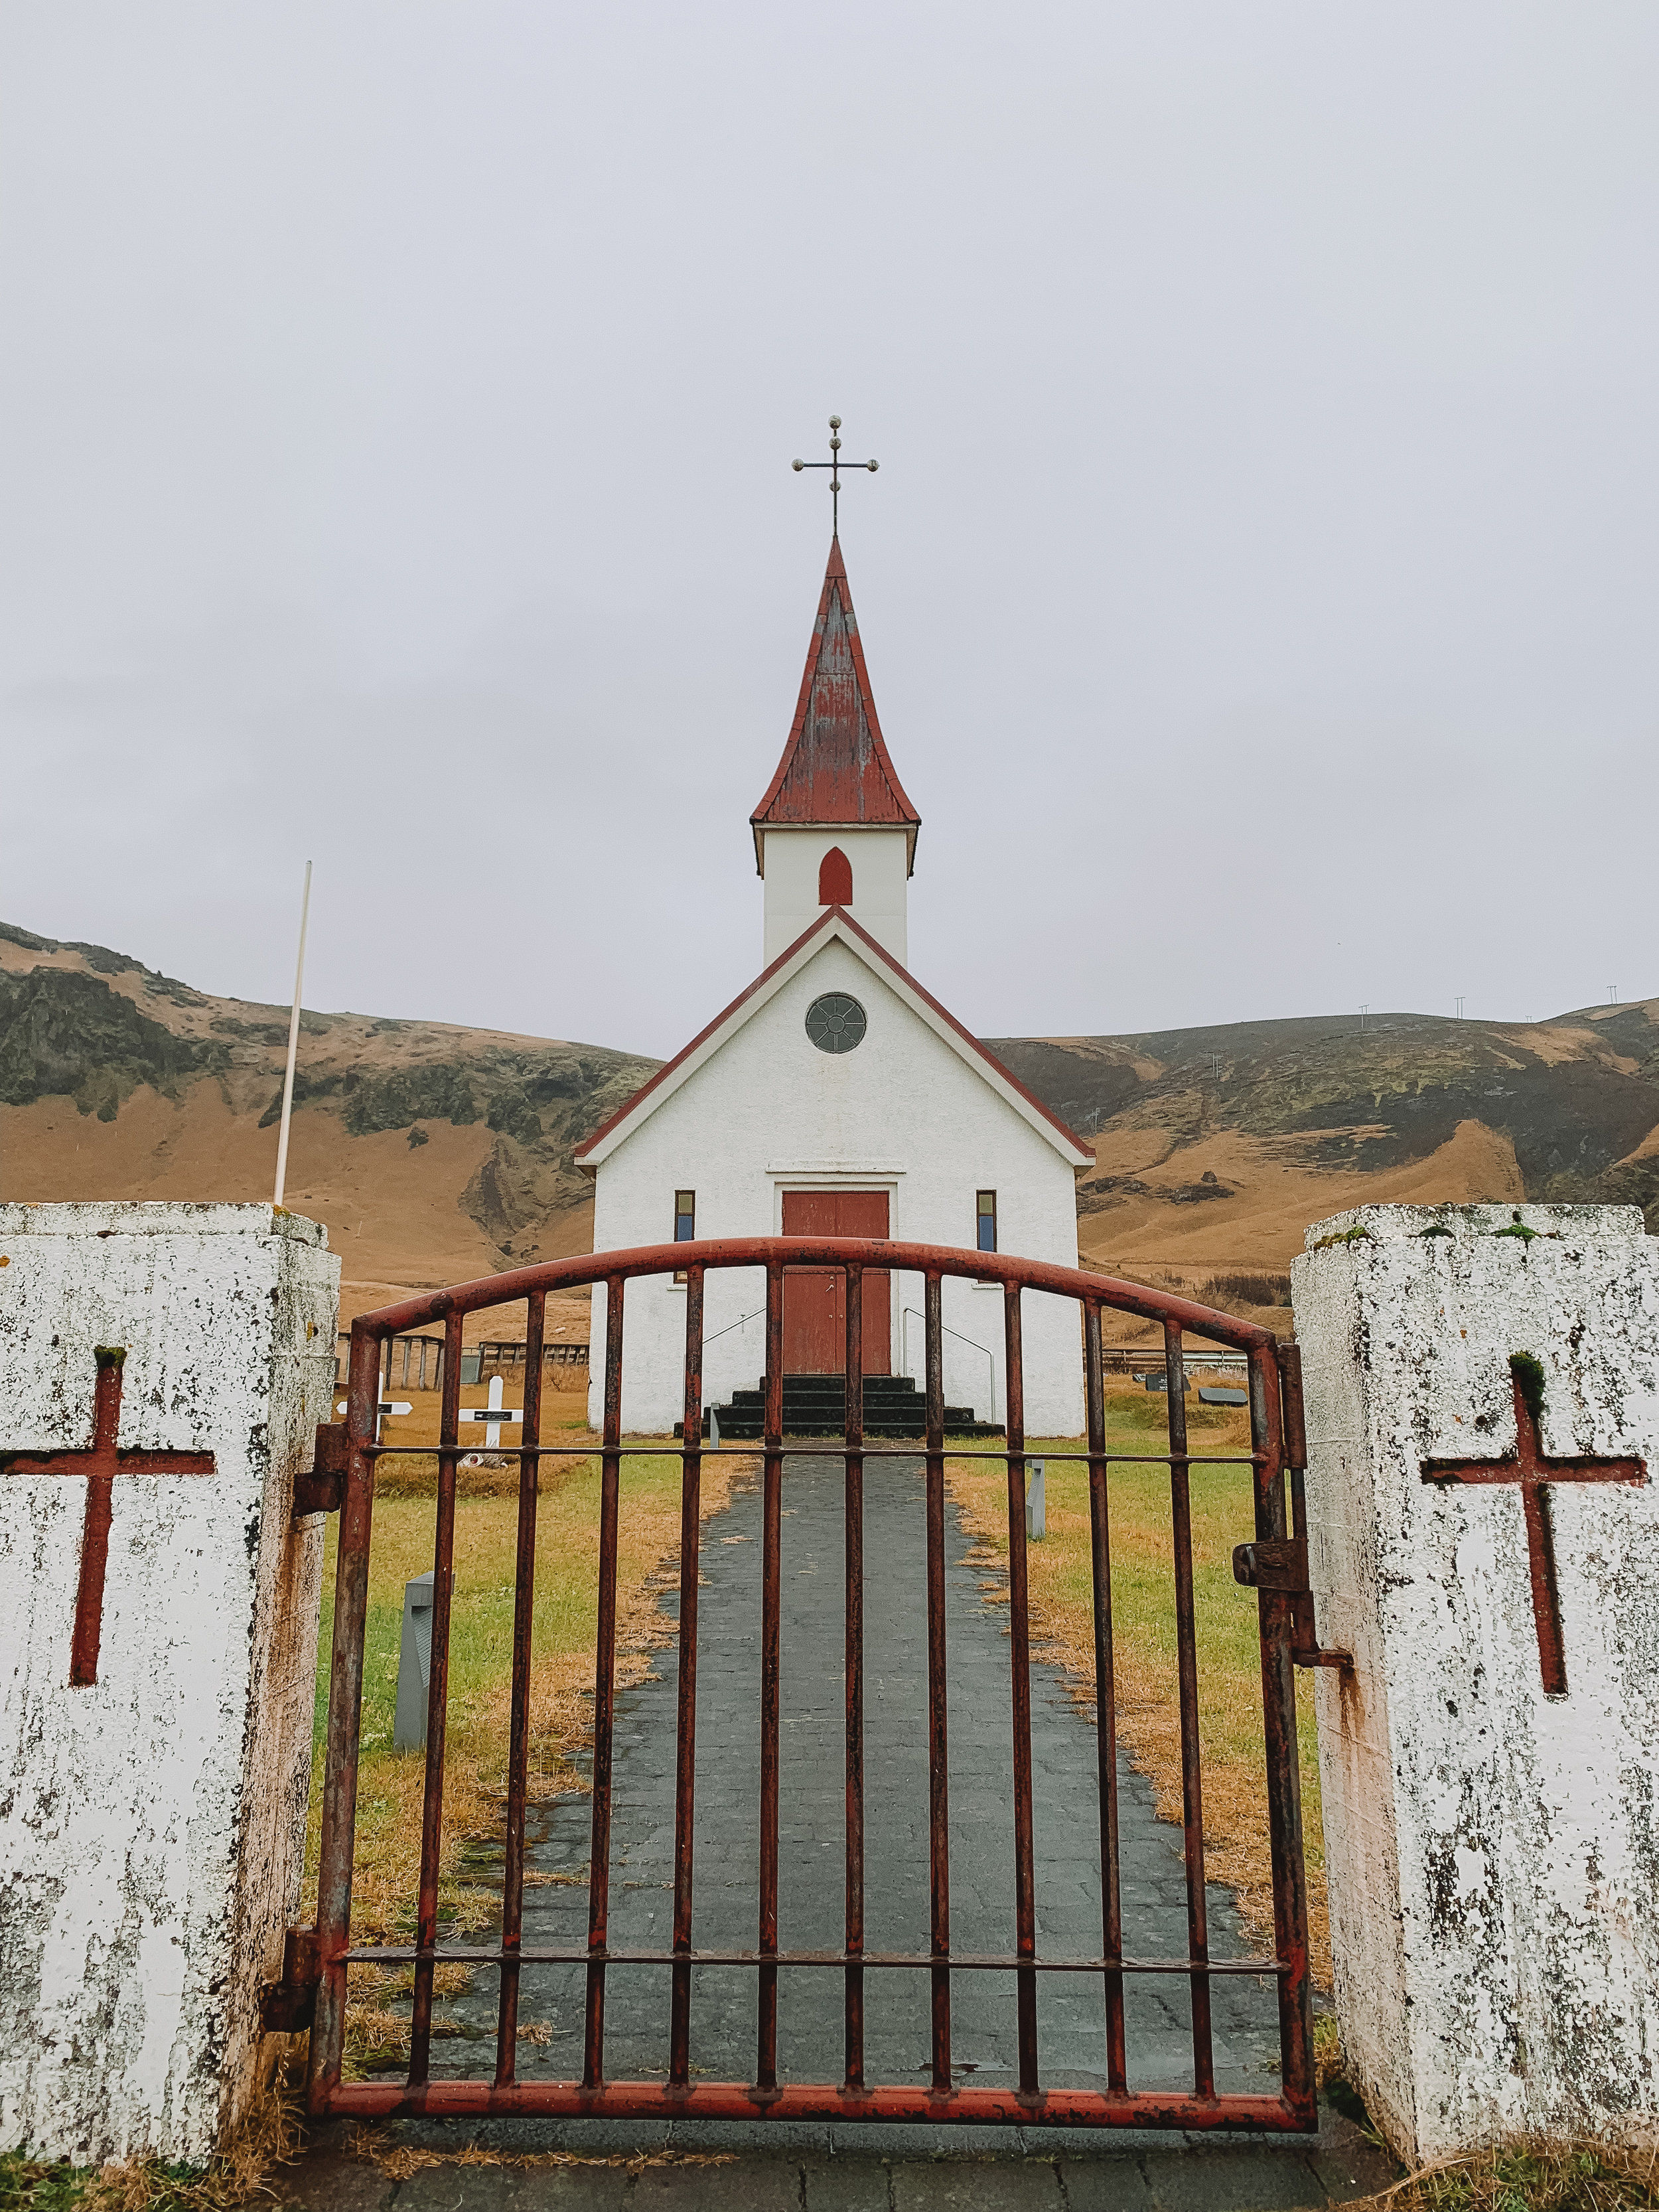 I made Doug drive on the way back, since I drove the way there. I kept making him take pit stops so I could take pictures. This little church was one of our stops, isn't it gorgeous?